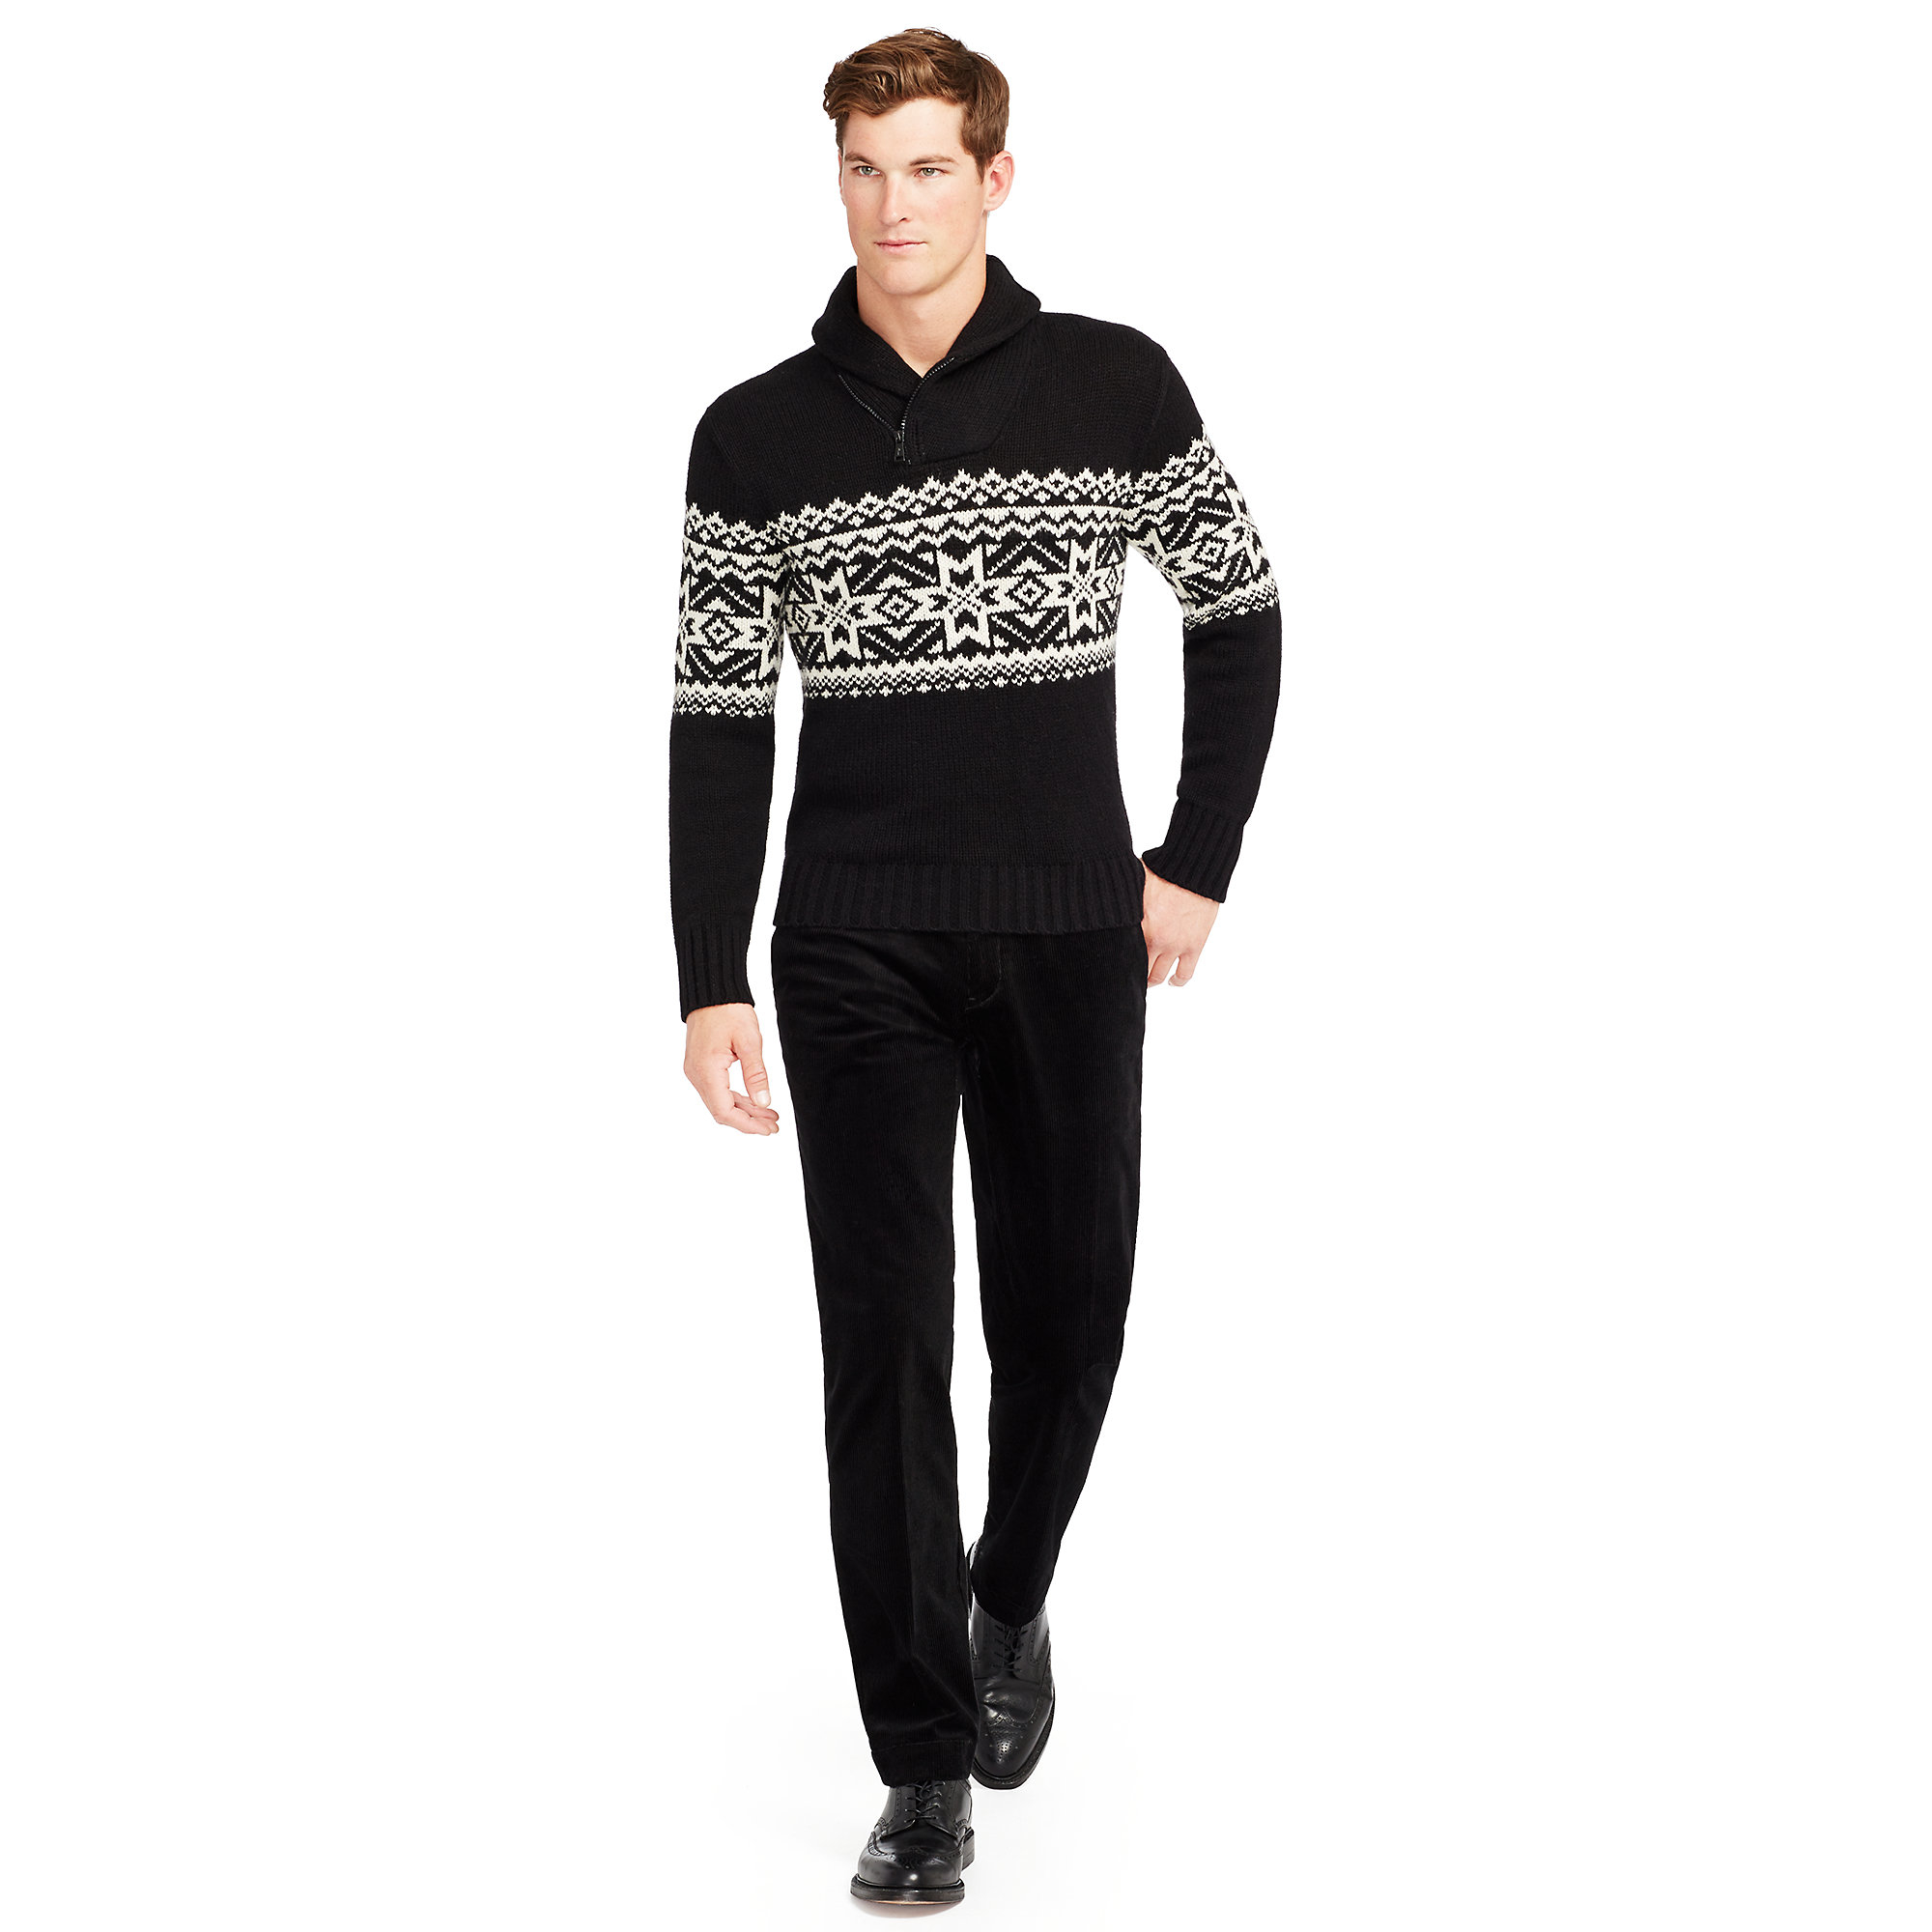 96a4940bec733 Lyst - Polo Ralph Lauren Nordic Cotton-blend Sweater in Black for Men